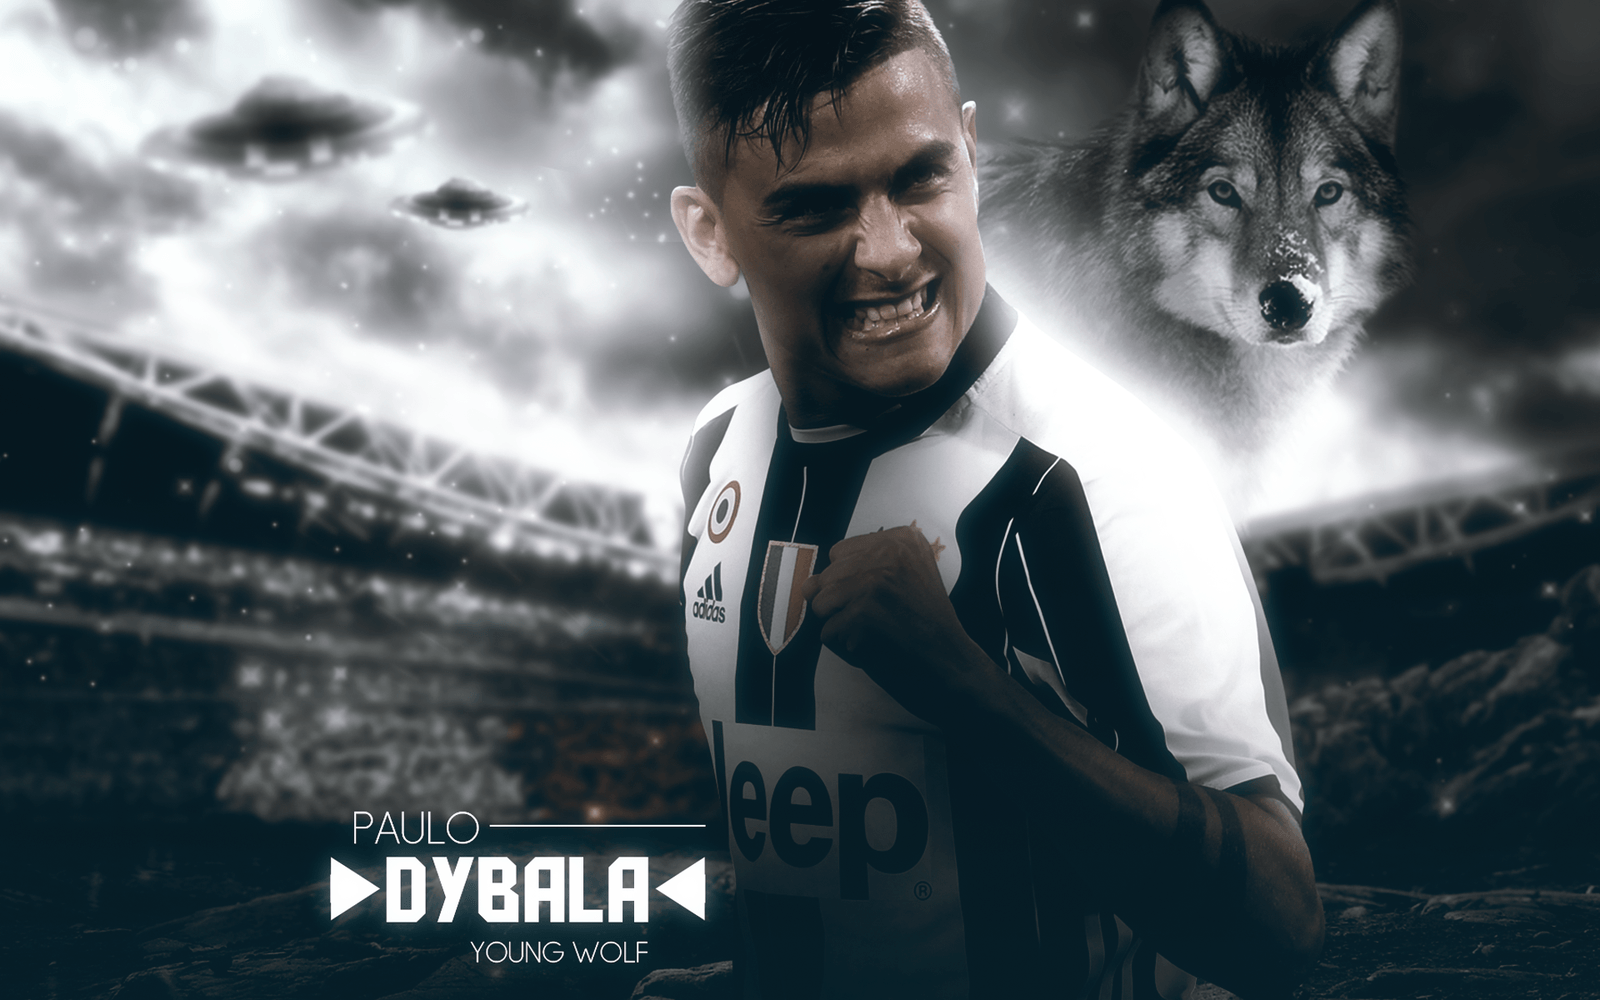 Dybala 2017 Wallpapers - Wallpaper Cave